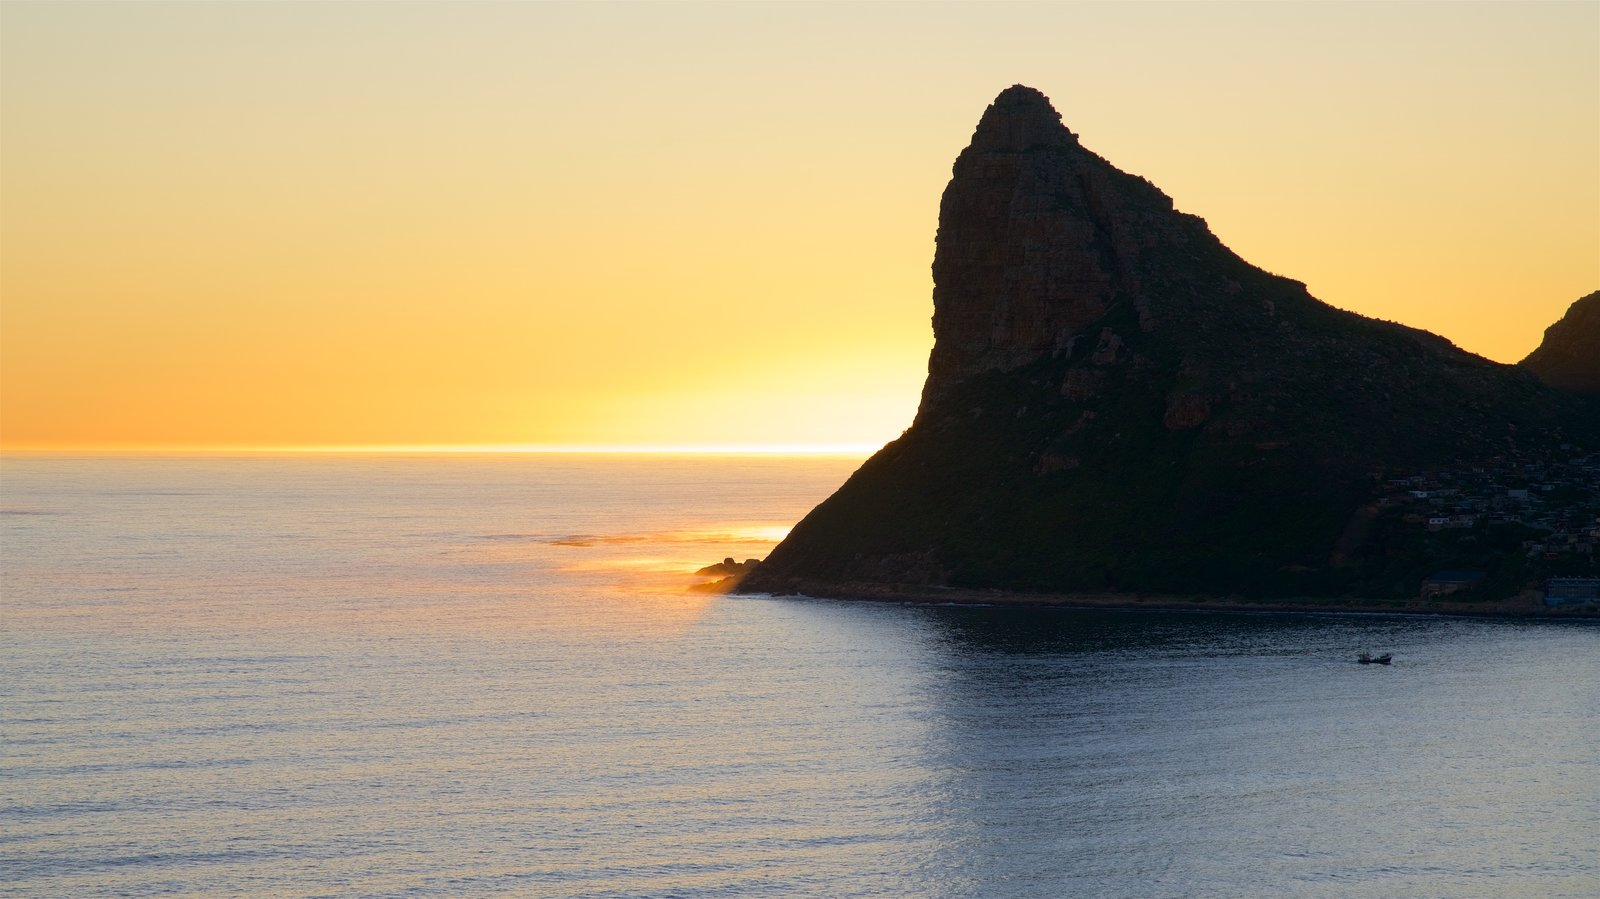 Chapmans Peak which includes a sunset and rocky coastline